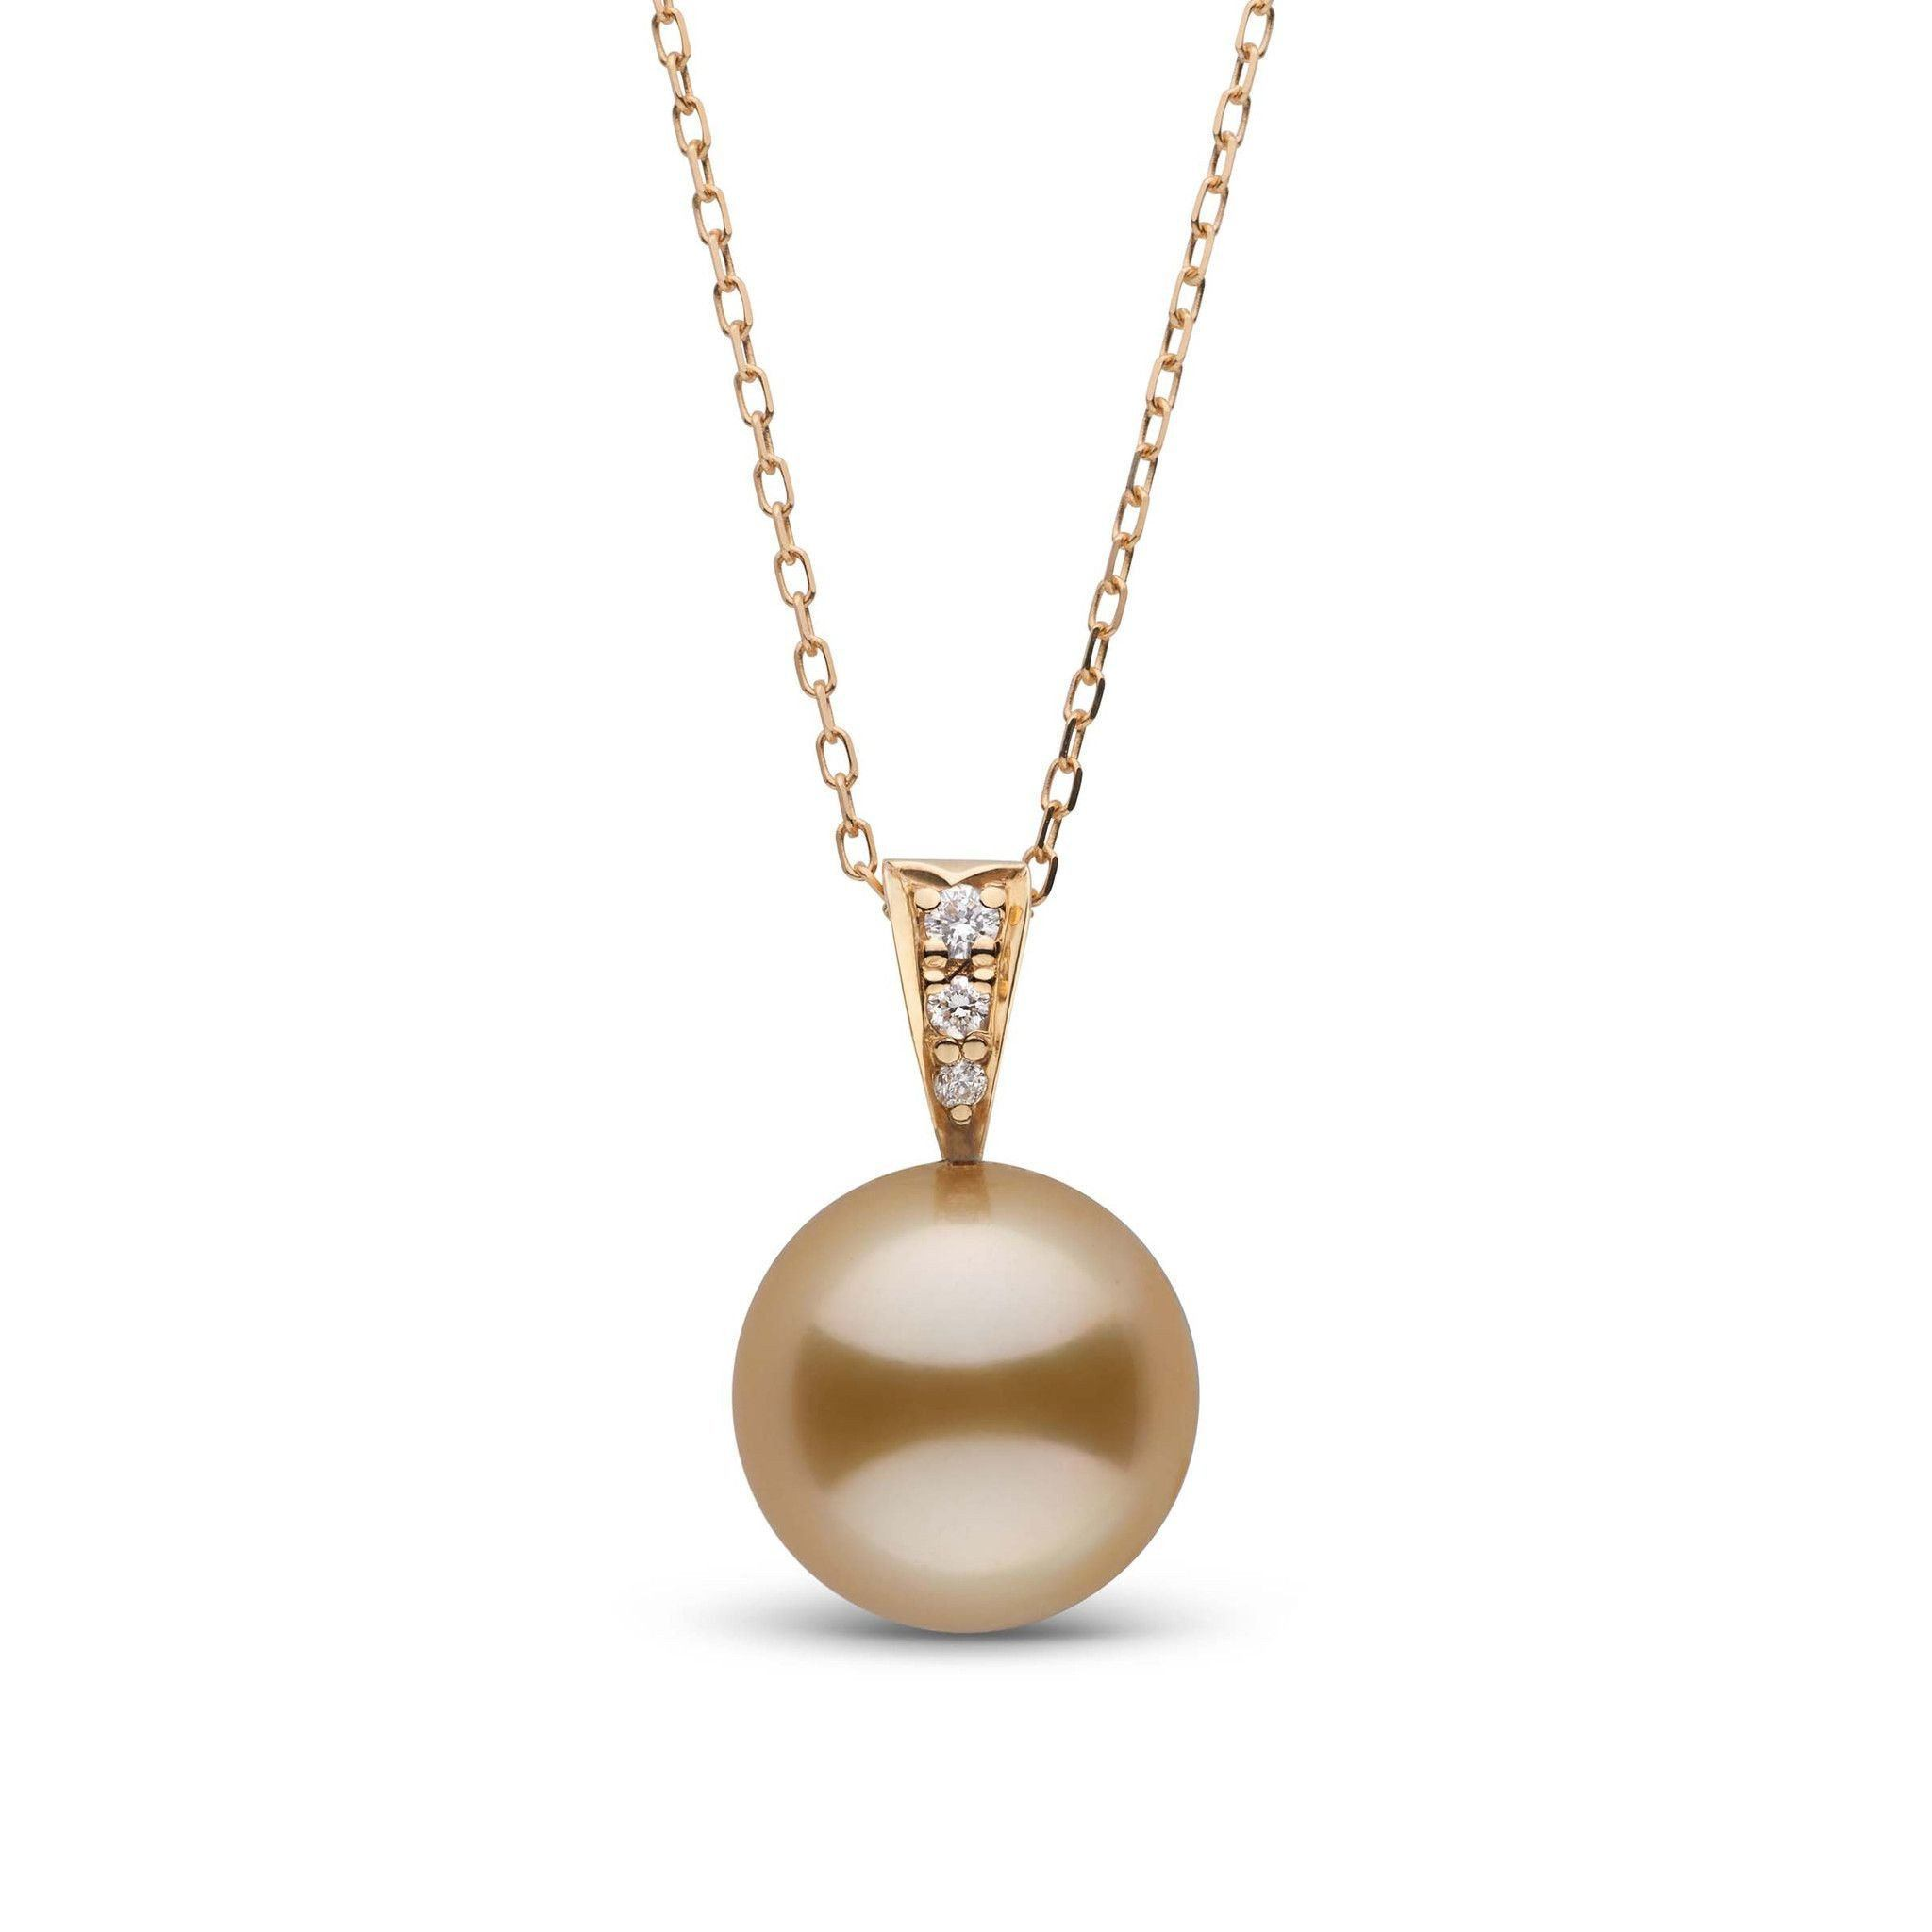 Desire Collection Golden 10.0-11.0 mm South Sea Pearl and Diamond Pendant